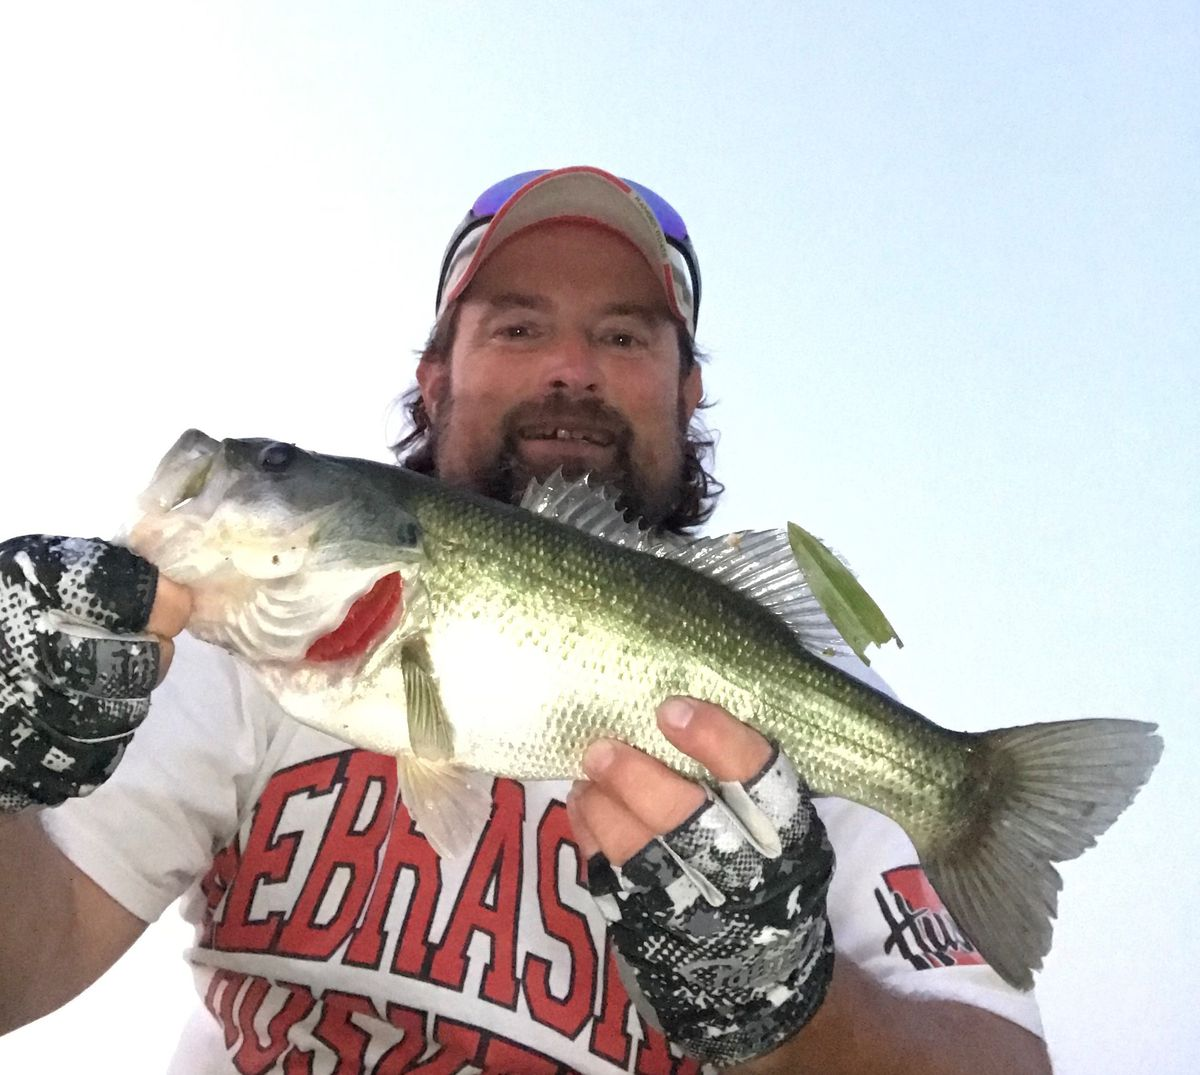 """Ken """"Husker"""" O'Malley with a late summer largemouth bass. Provided photo"""